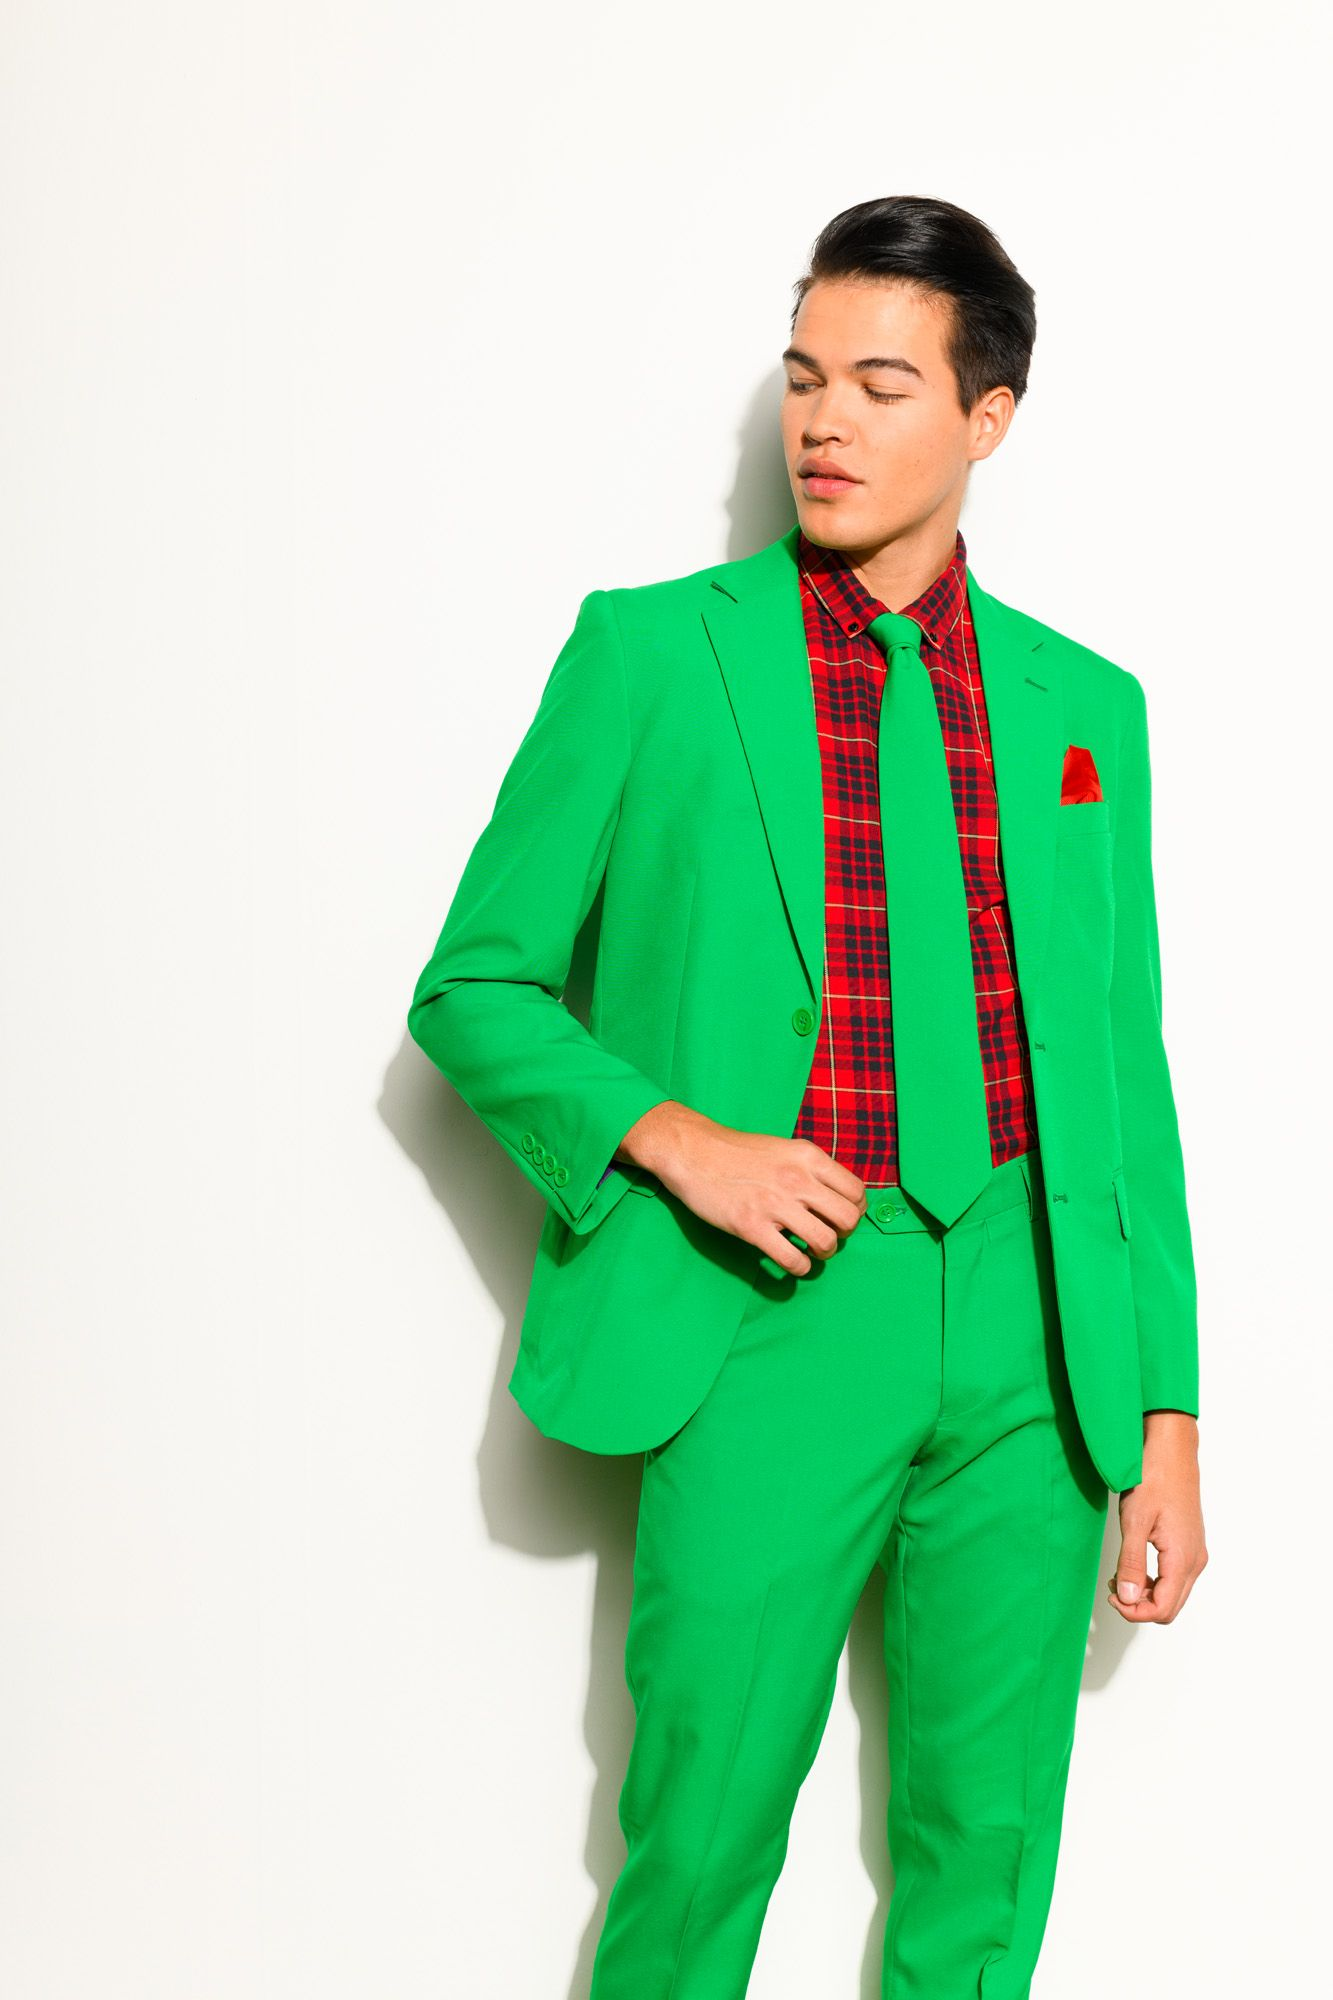 8e3f9096b7a81 Men's Evergreen suit in a solid green color. Great for Thanksgiving and the  holidays.